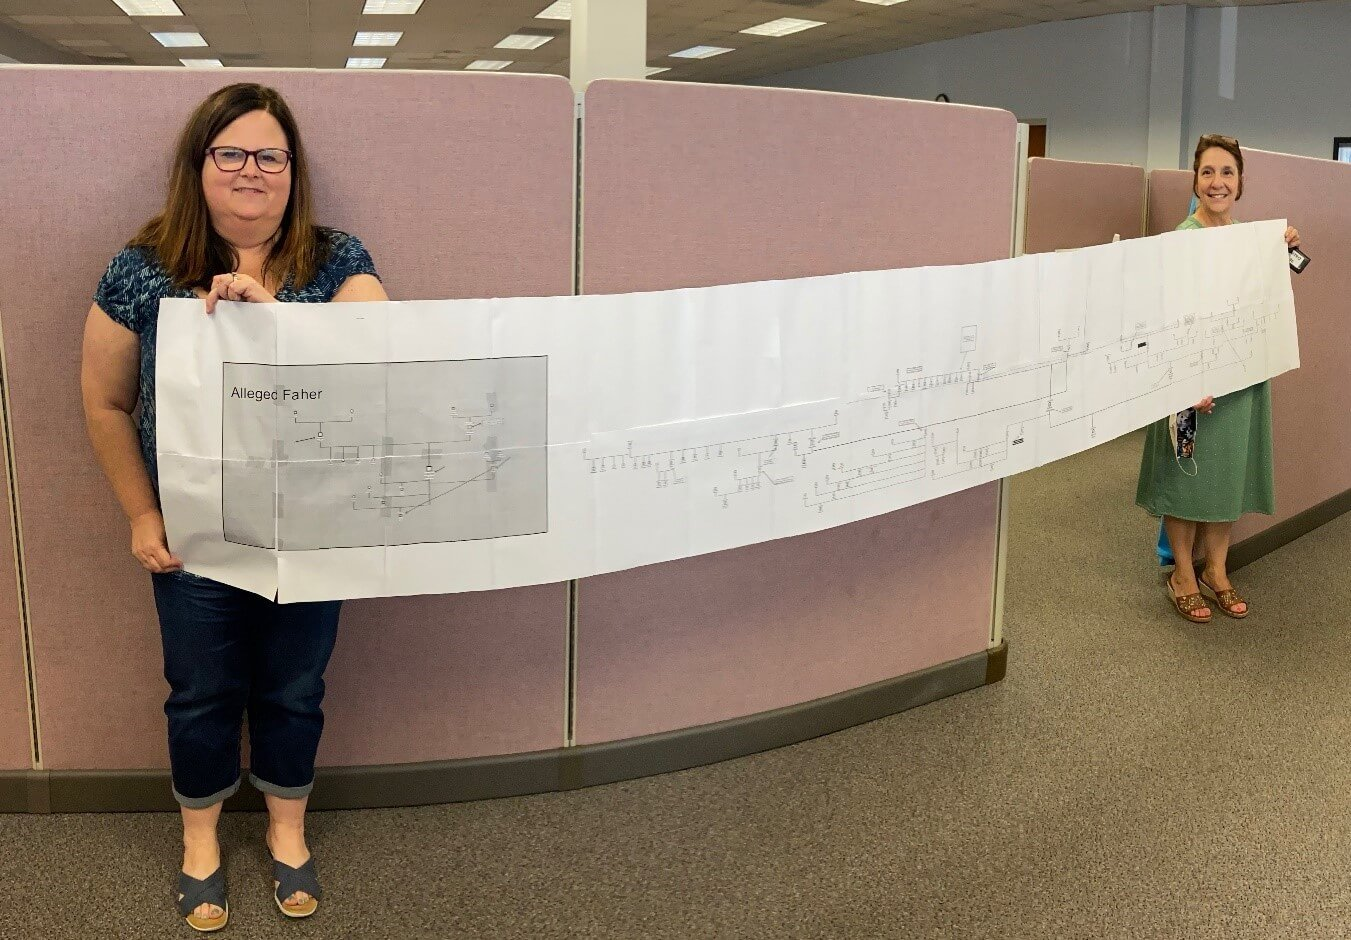 Hancock County 30 Days to Family supervisor, Angie Rader, and specialist, Rebecca Shumaker, display a recent genogram, with 159 identified family members.